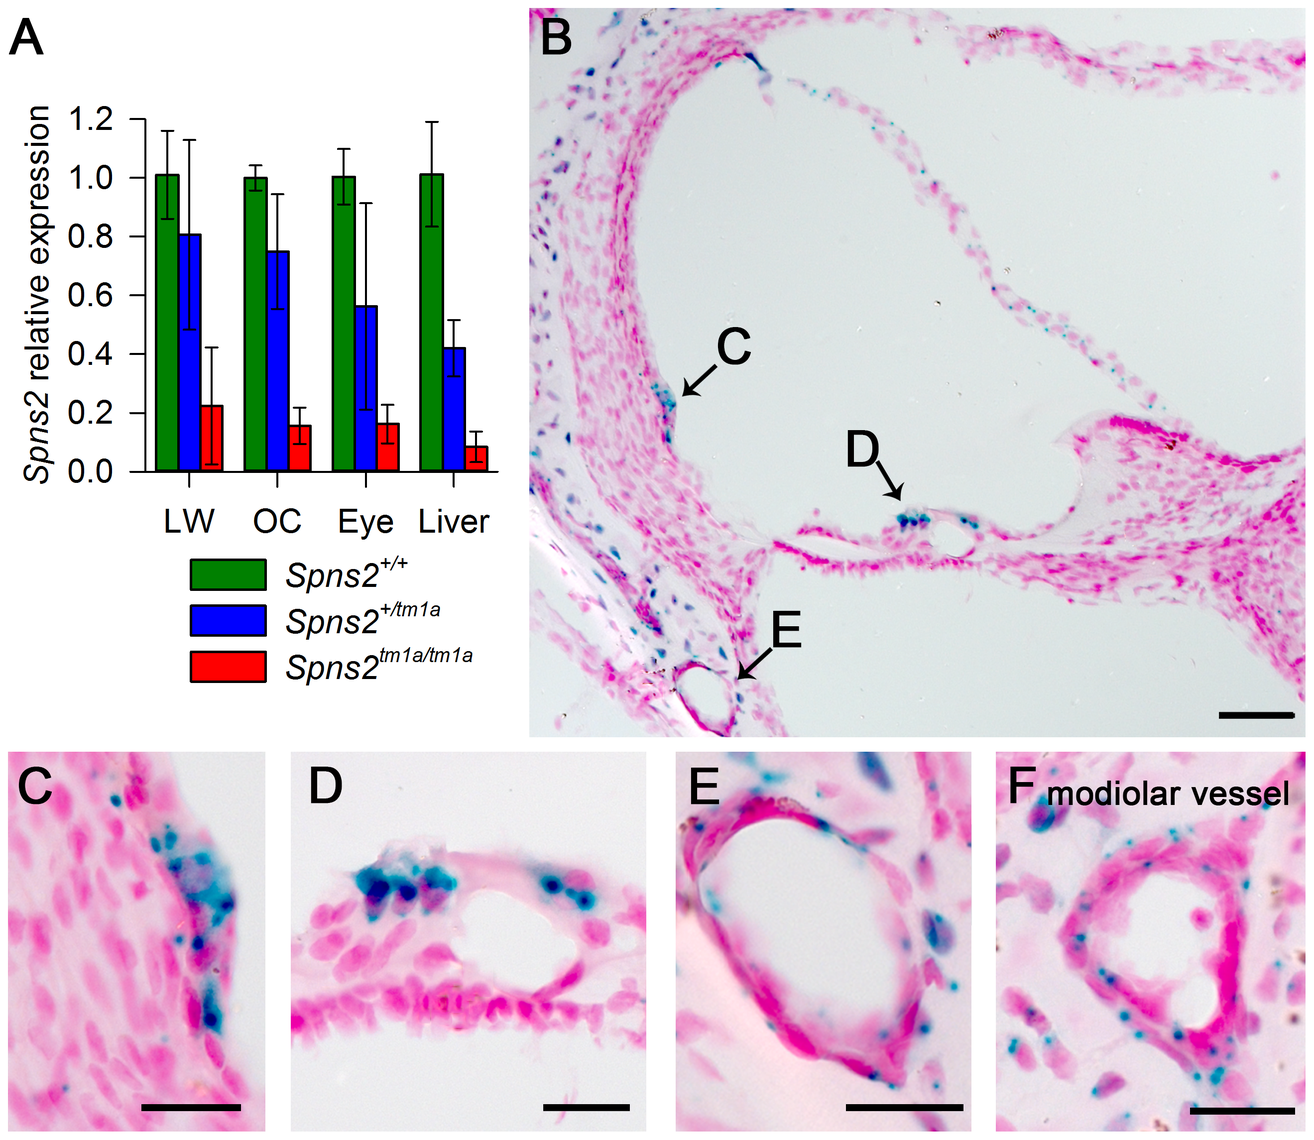 Spns2 is expressed in the cochlea.